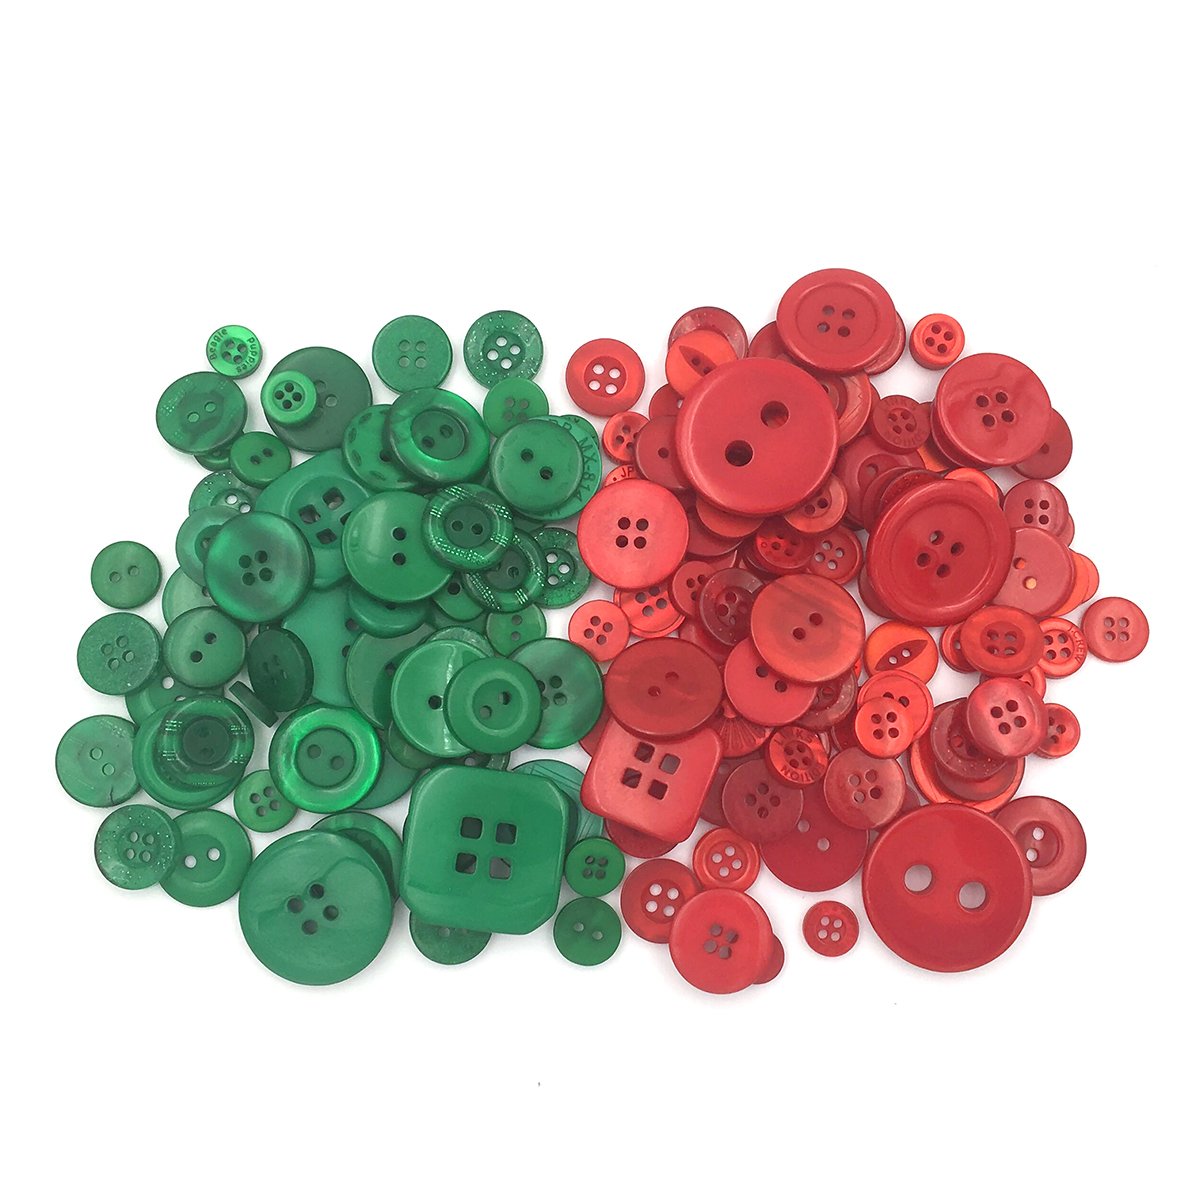 18mm 75 Red Round Resin Sewing Buttons Scrapbooking